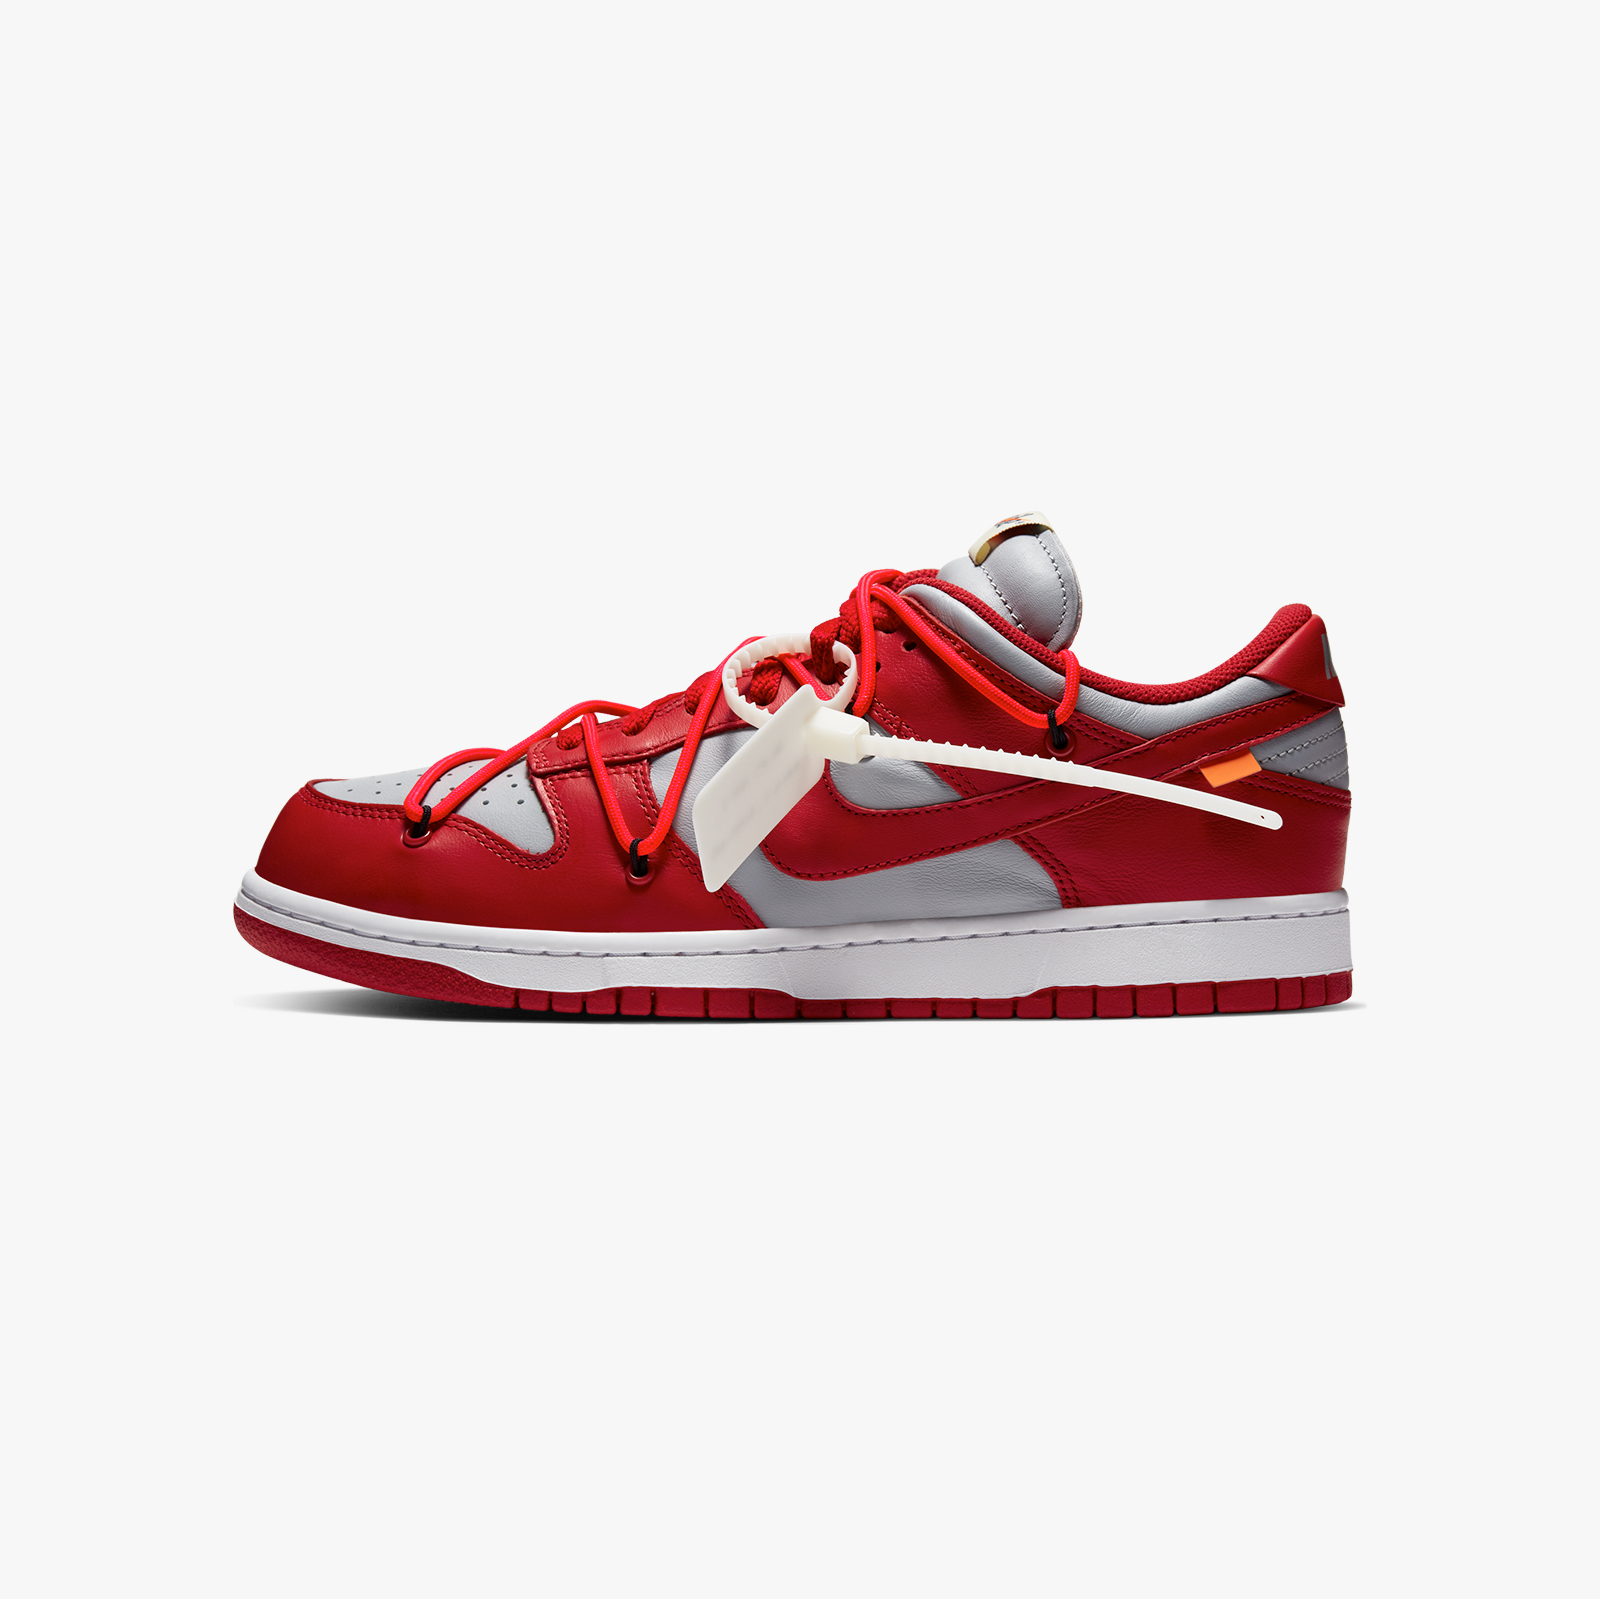 Nike Dunk Low Leather OW Ct0856 600 Sneakersnstuff